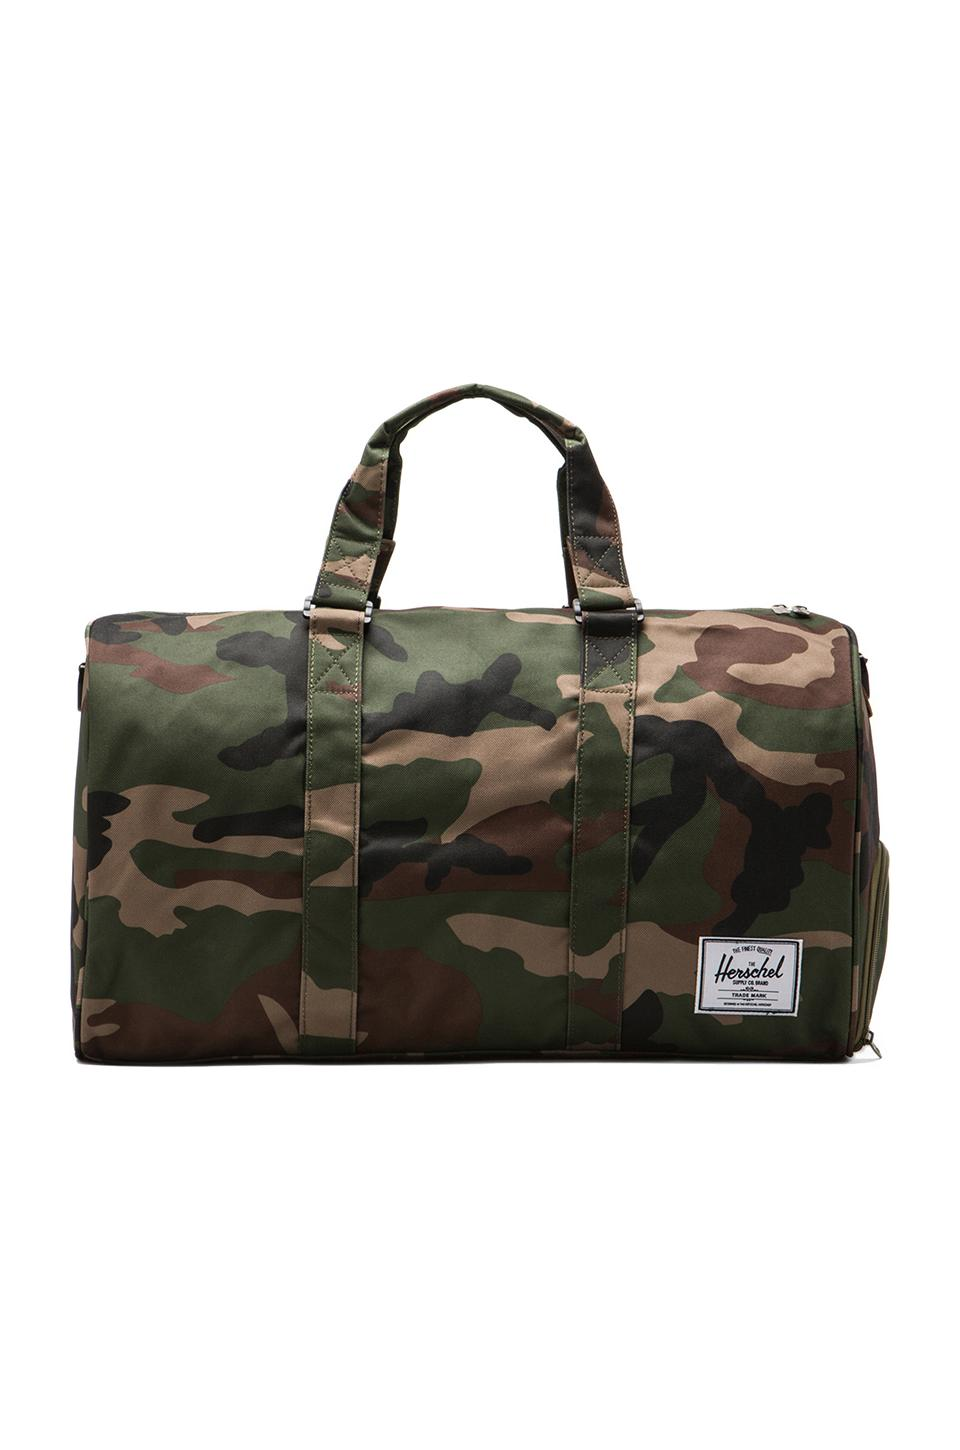 Herschel Supply Co. Sac de voyage Novel en Camouflage